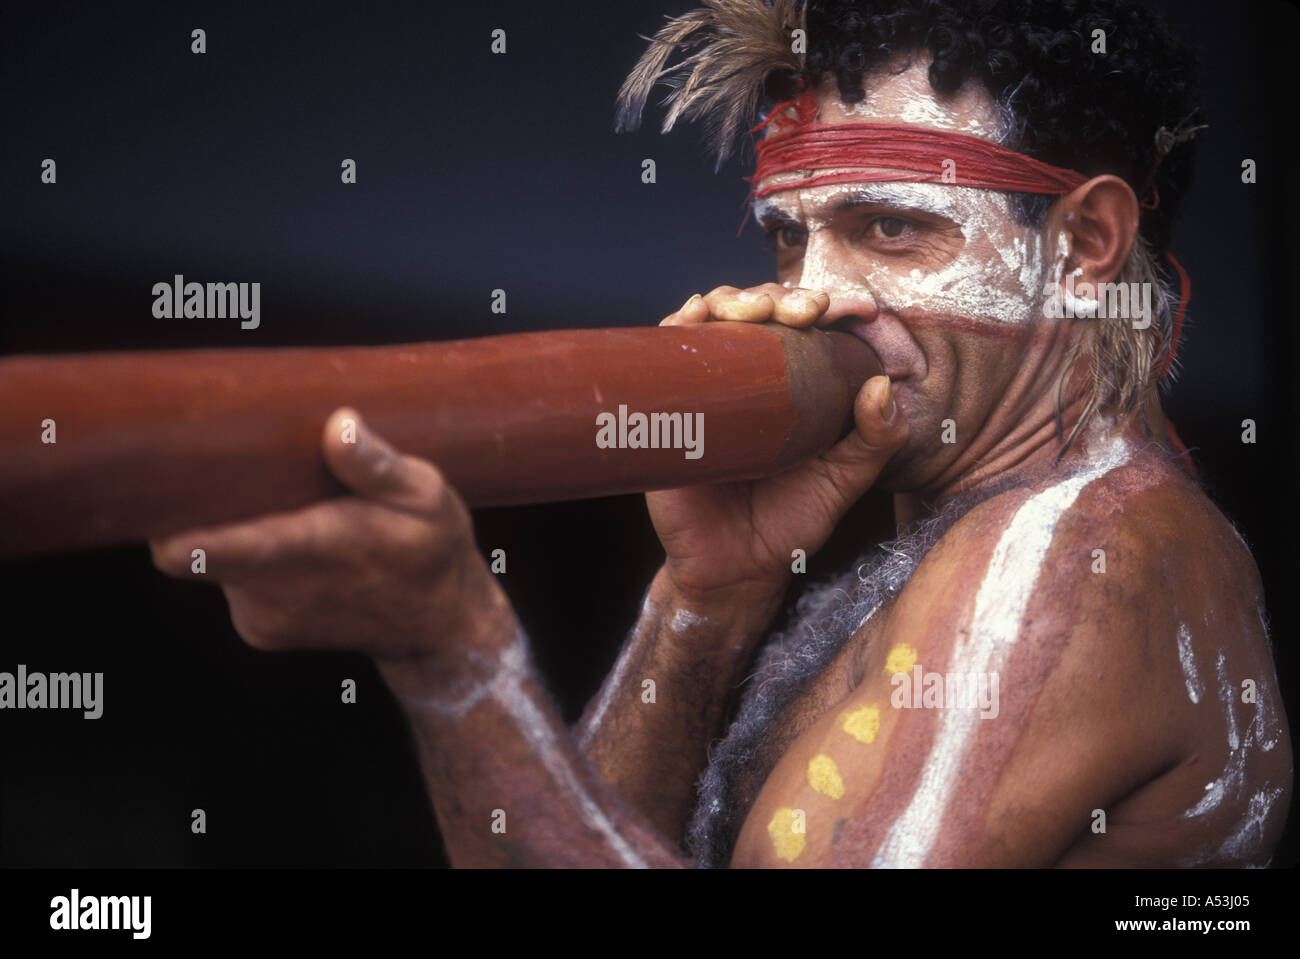 191b93bbe Australia NSW MR David Kennedy wearing traditional Aboriginal face and body  paints plays the dijeradoo in